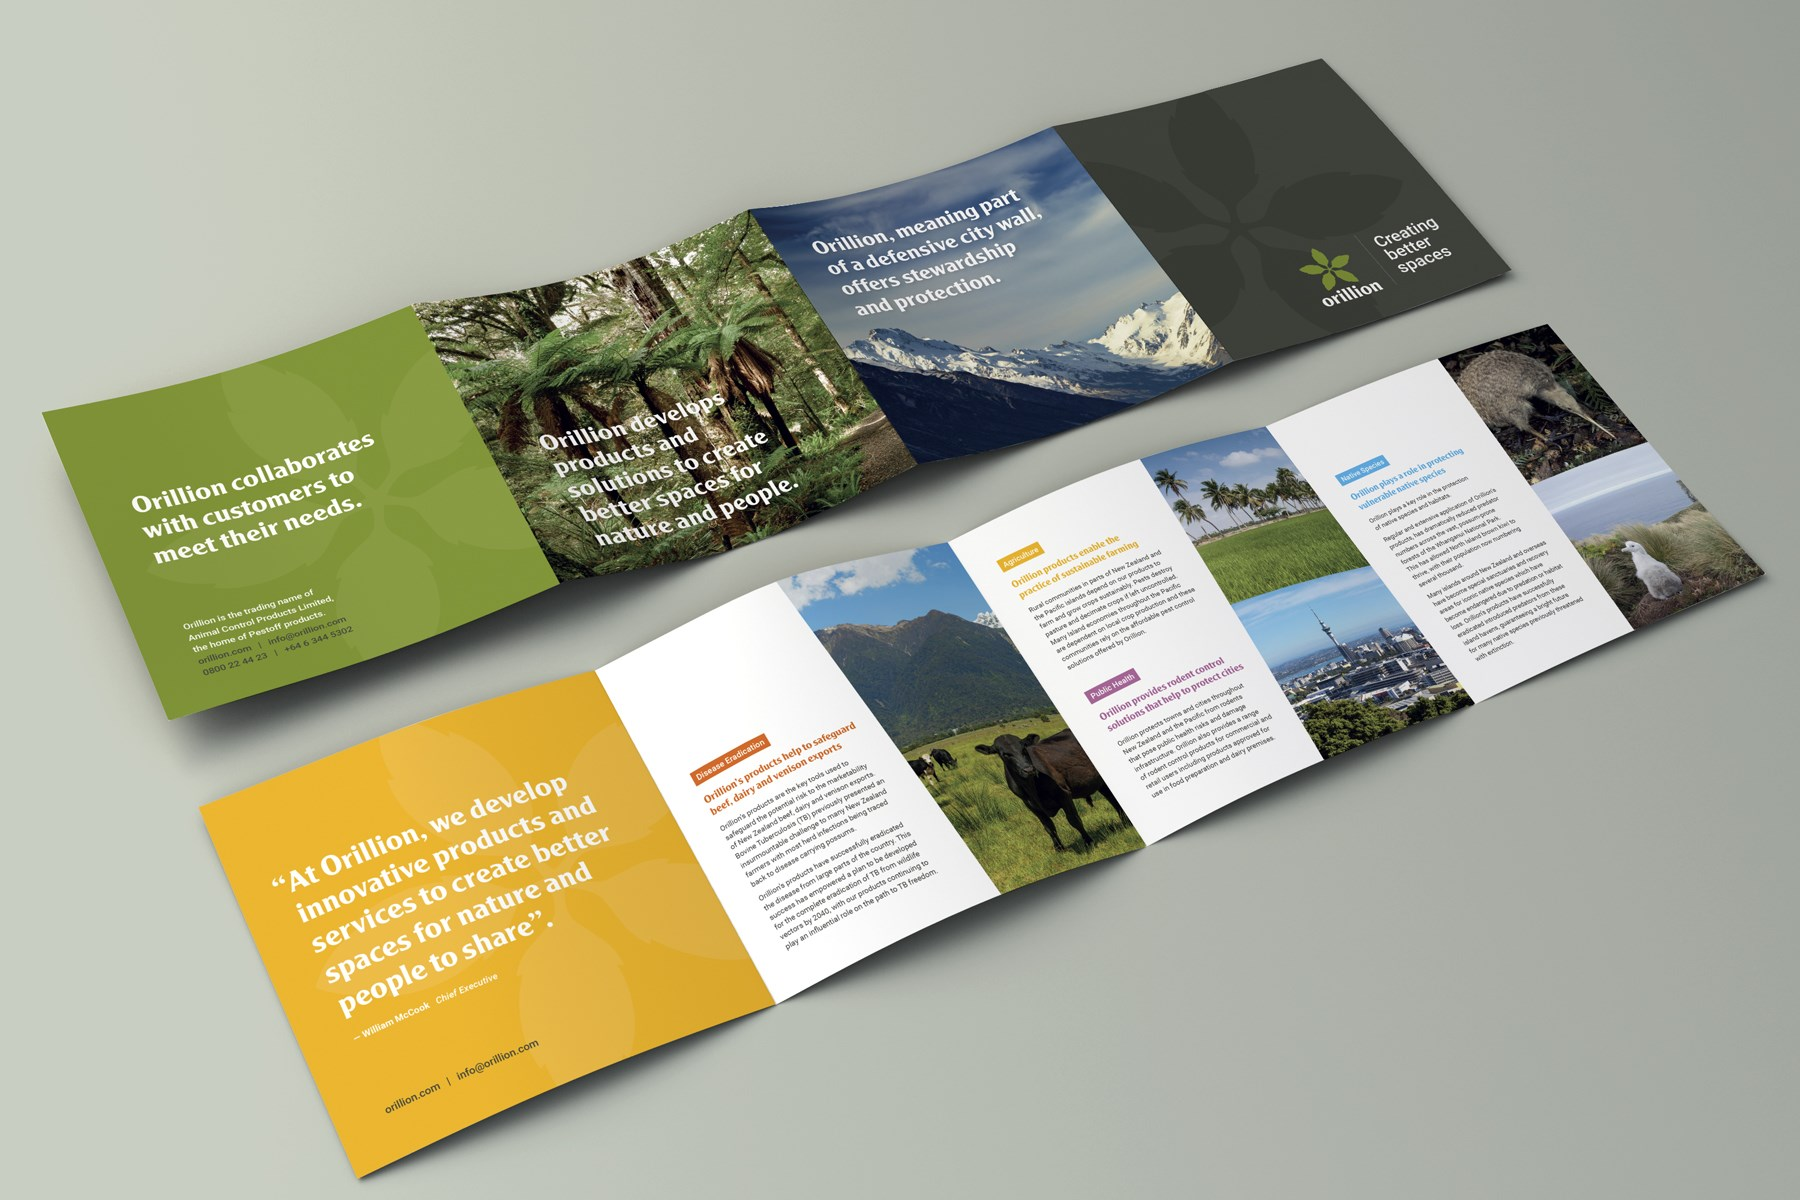 Orillion-Square4-Fold-Brochure02.jpg